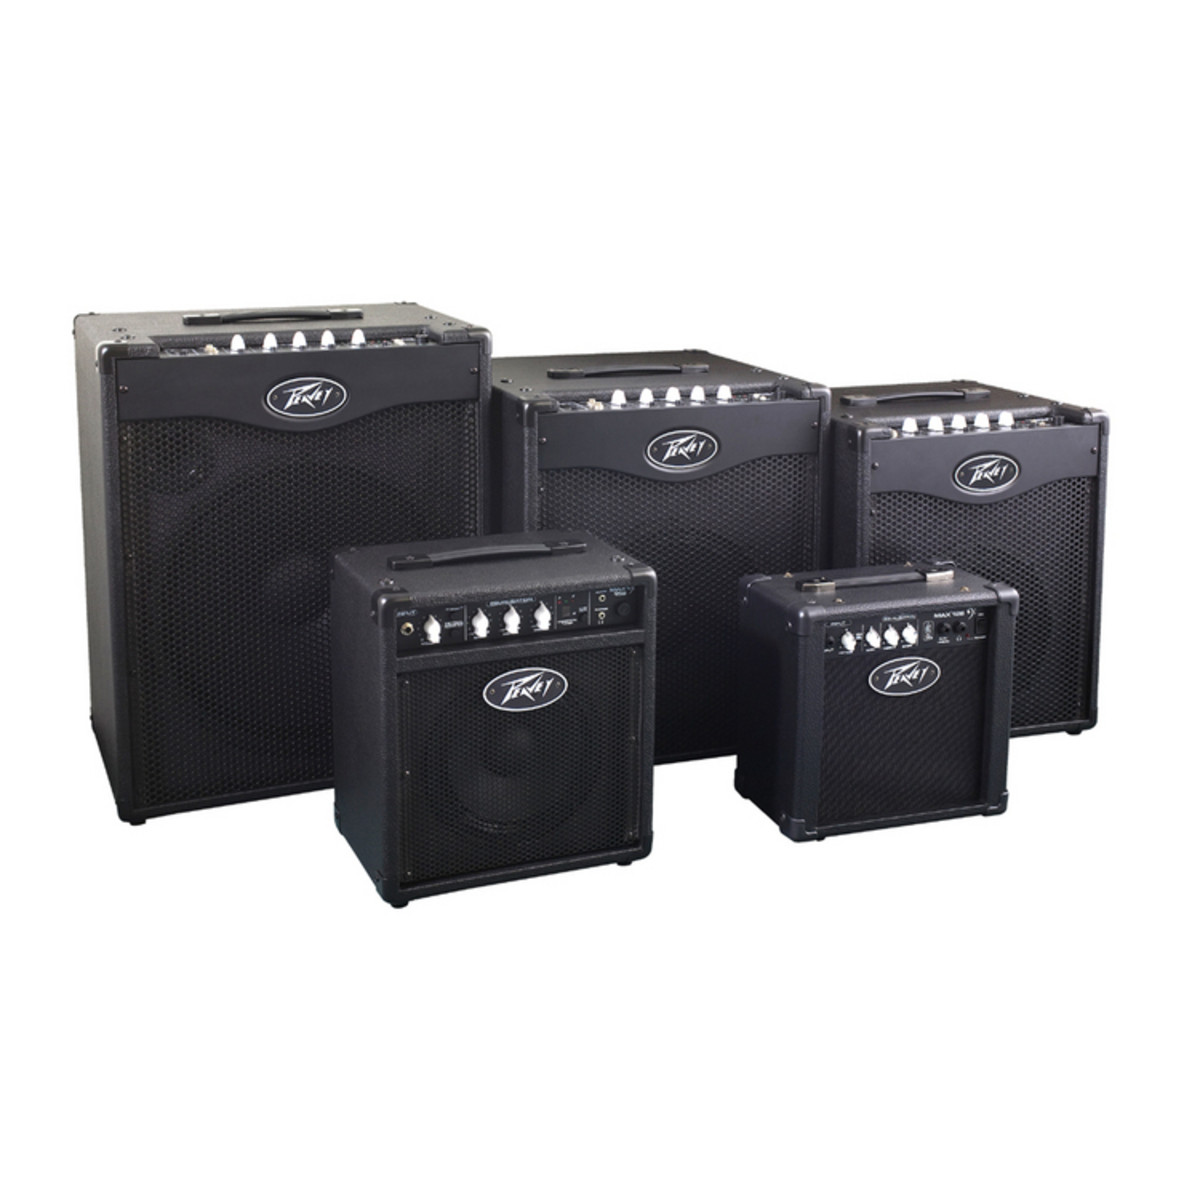 disc peavey max 115 bass combo amp 2012 model at gear4music. Black Bedroom Furniture Sets. Home Design Ideas